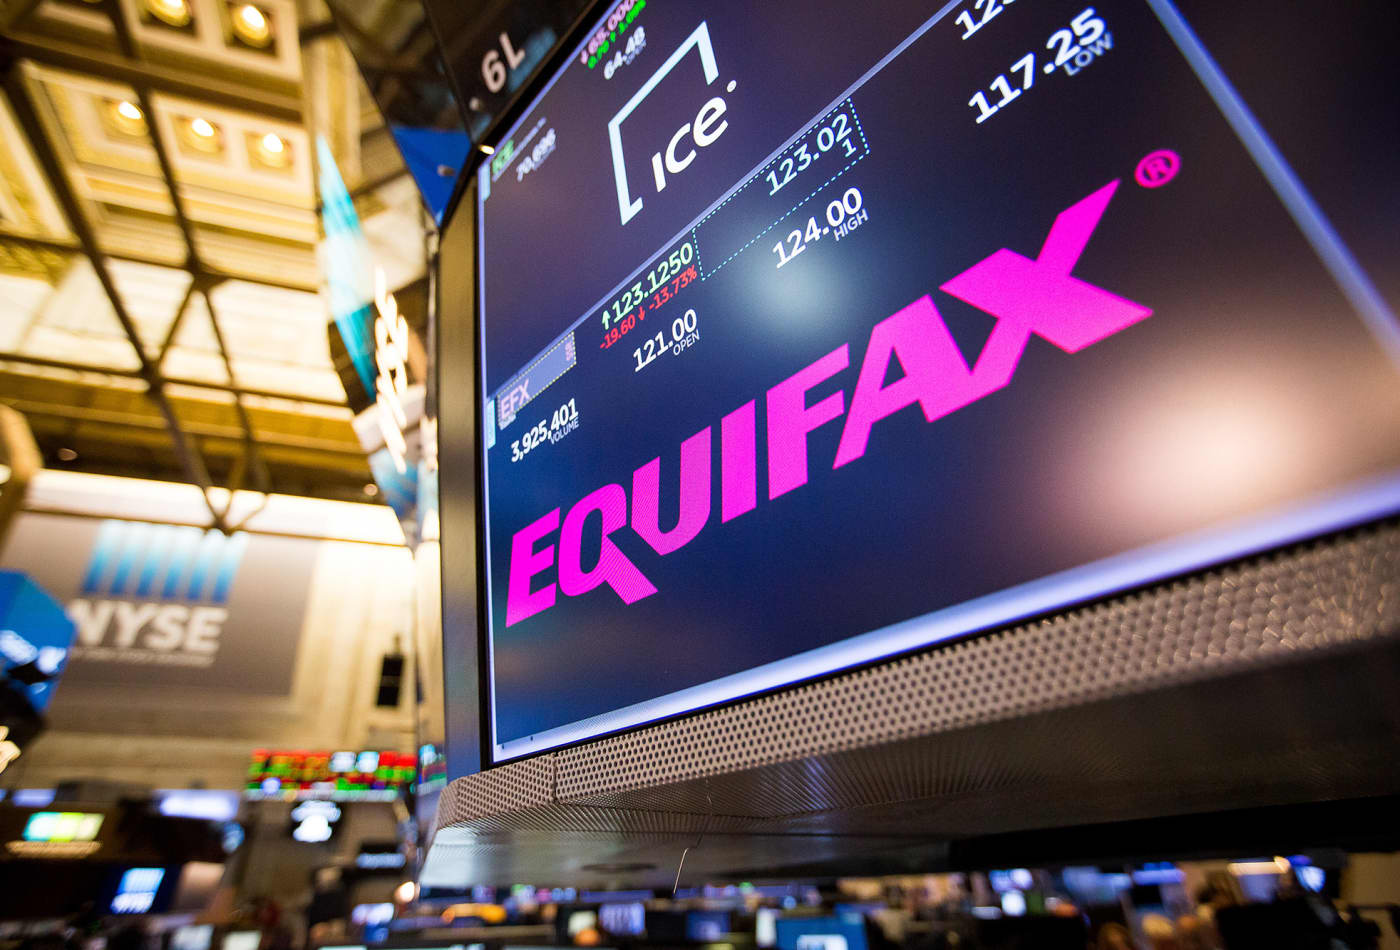 Is it better to get $125 or free credit monitoring from Equifax?